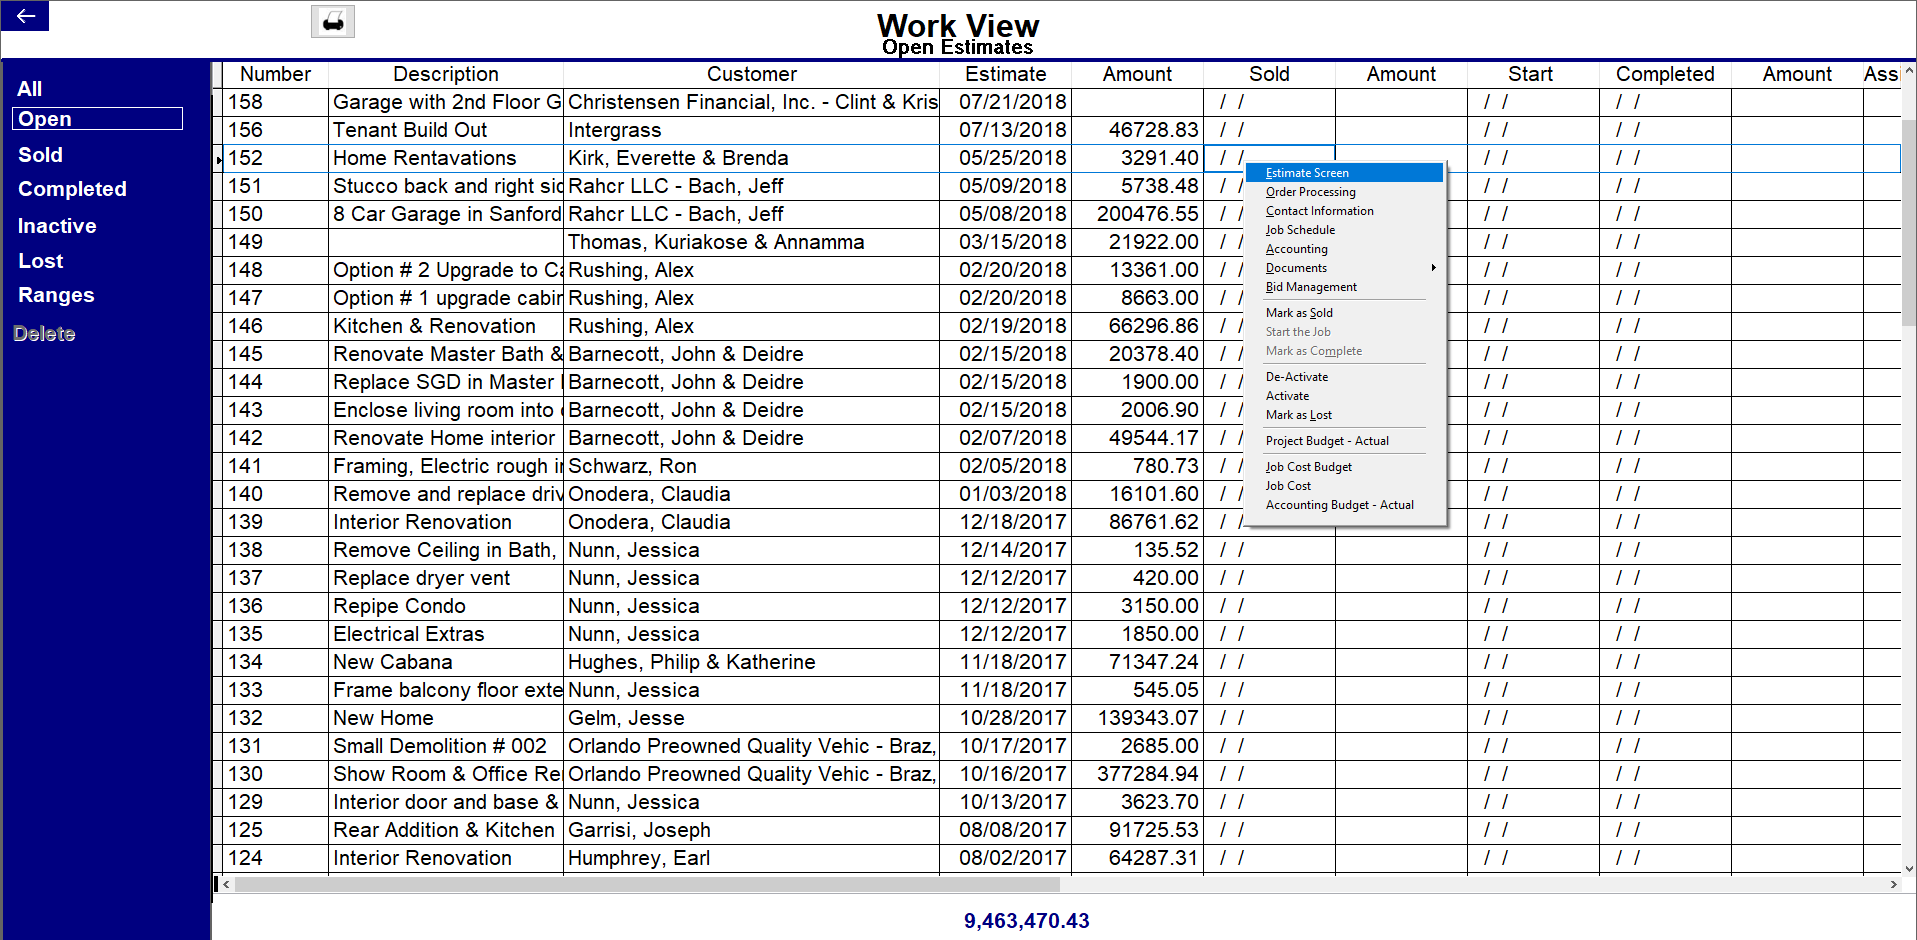 Contractor's Office Software - Work view